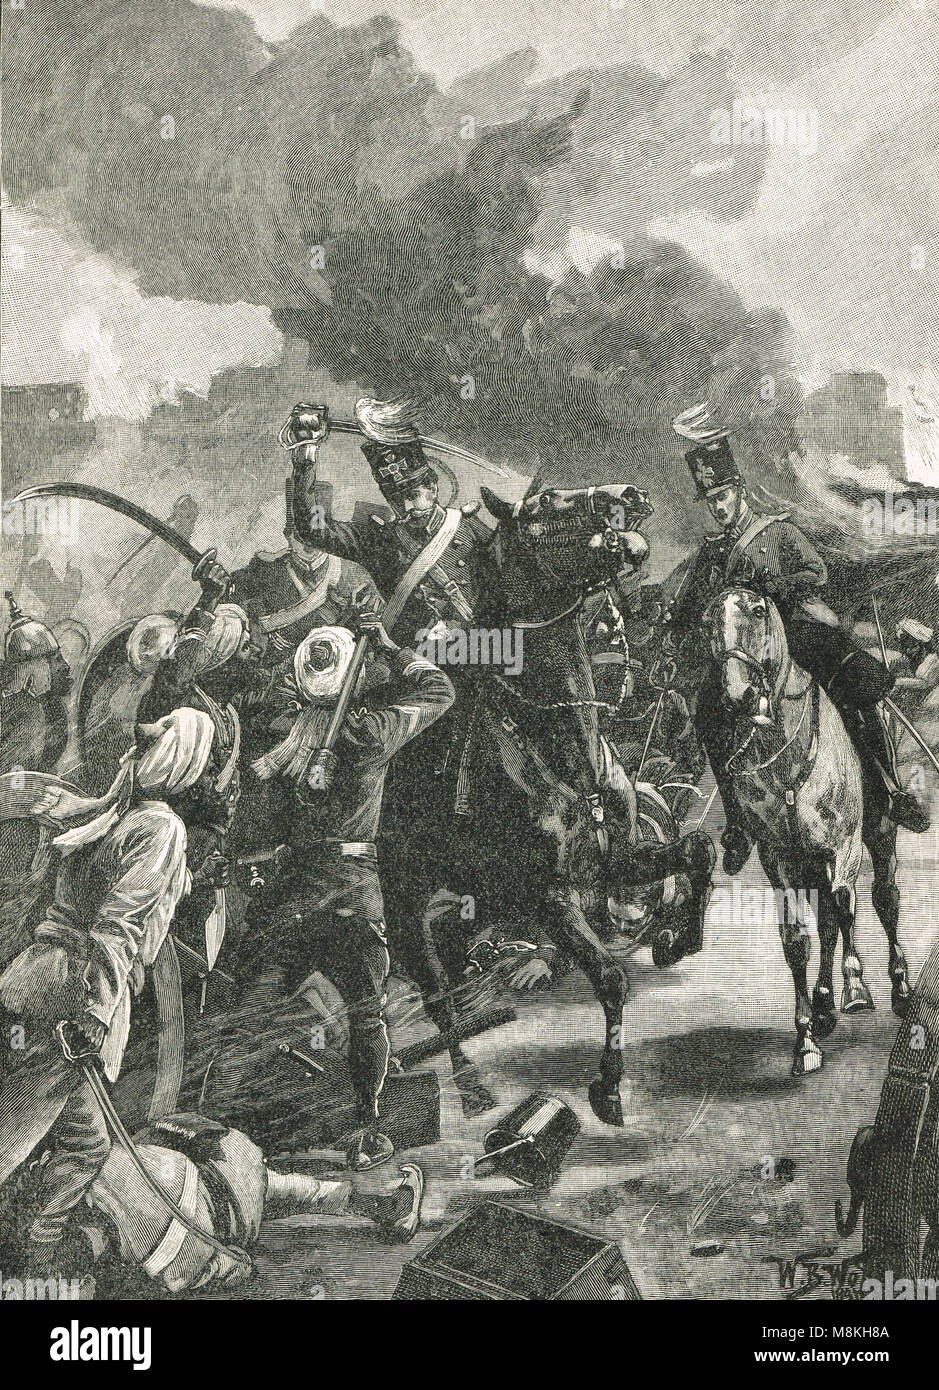 Sir Joseph Thackwell, leading the Cavalry charge, Battle of Sobraon, 10 February 1846 - Stock Image